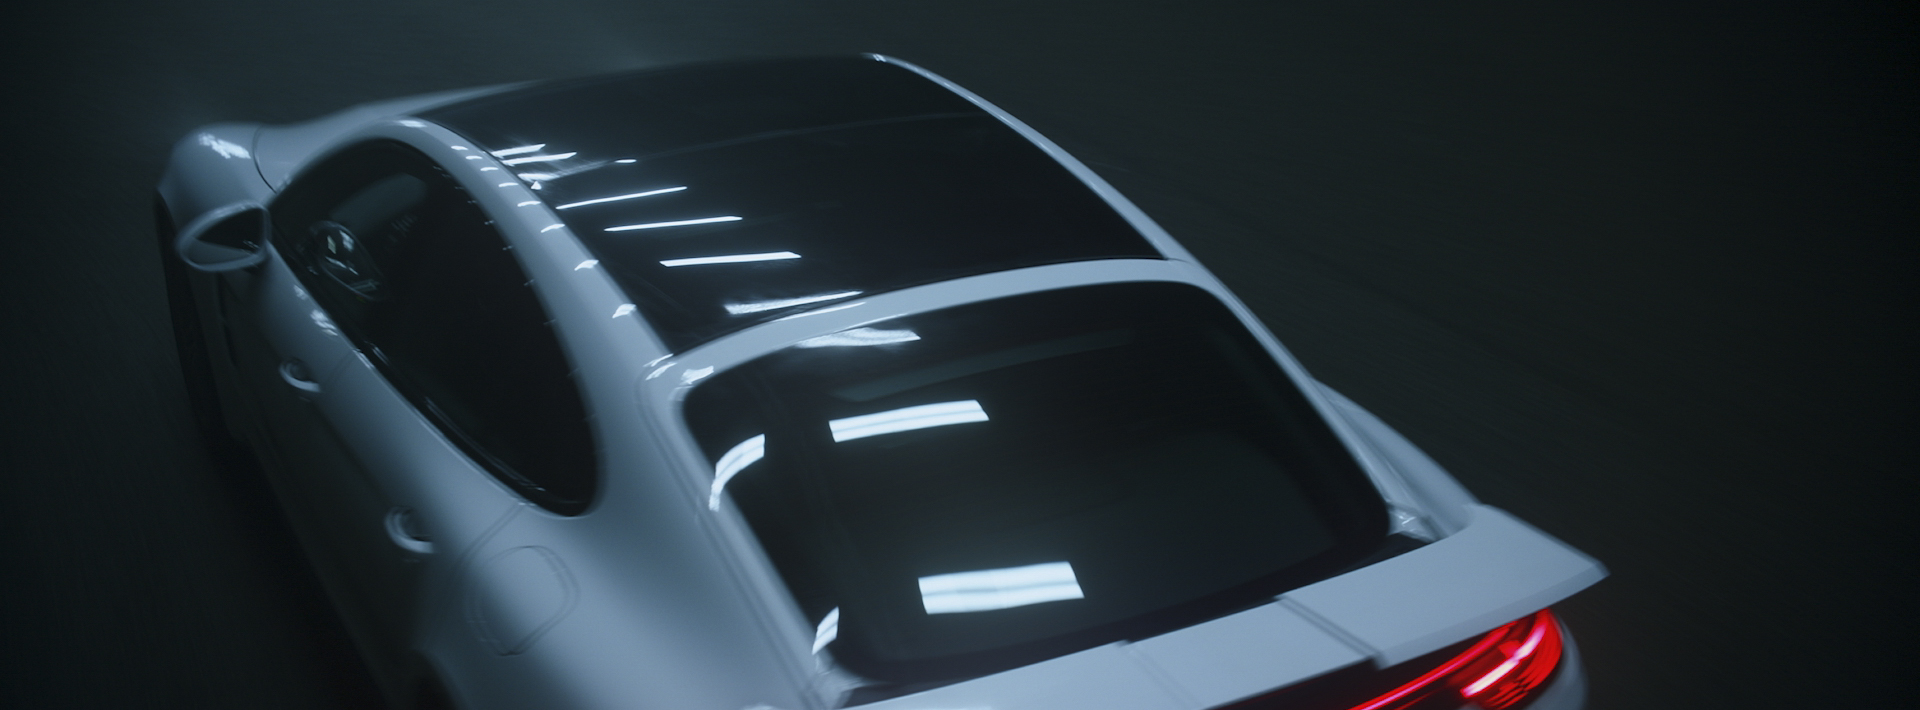 Porsche_E-Performance_Dir_Cut_1.1.24.jpg